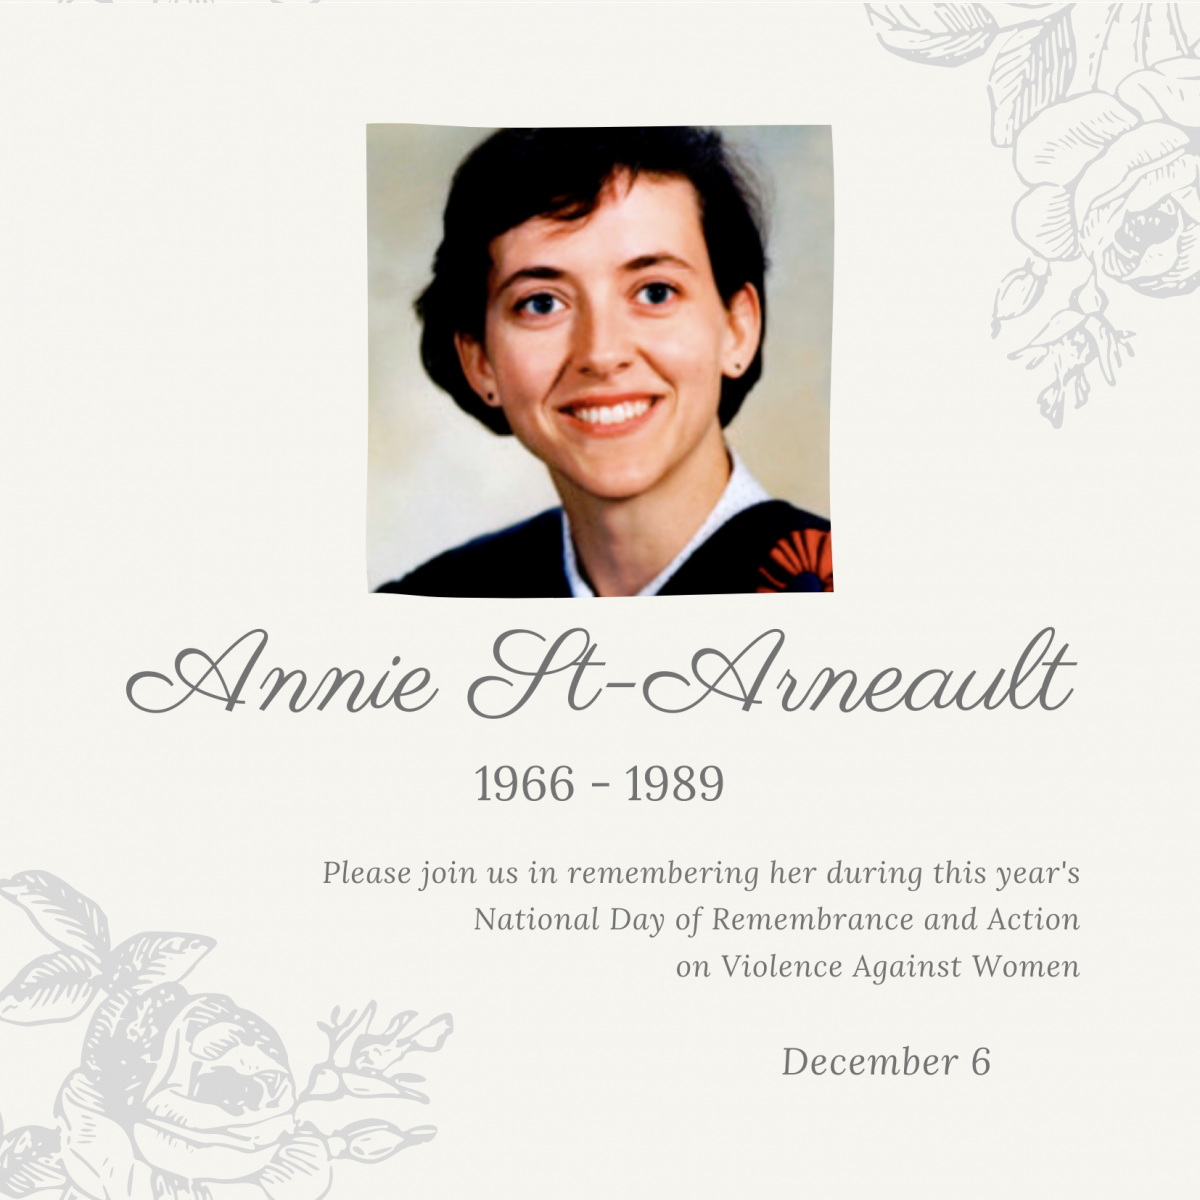 Anne St-Arneault. 1966 to 1989.